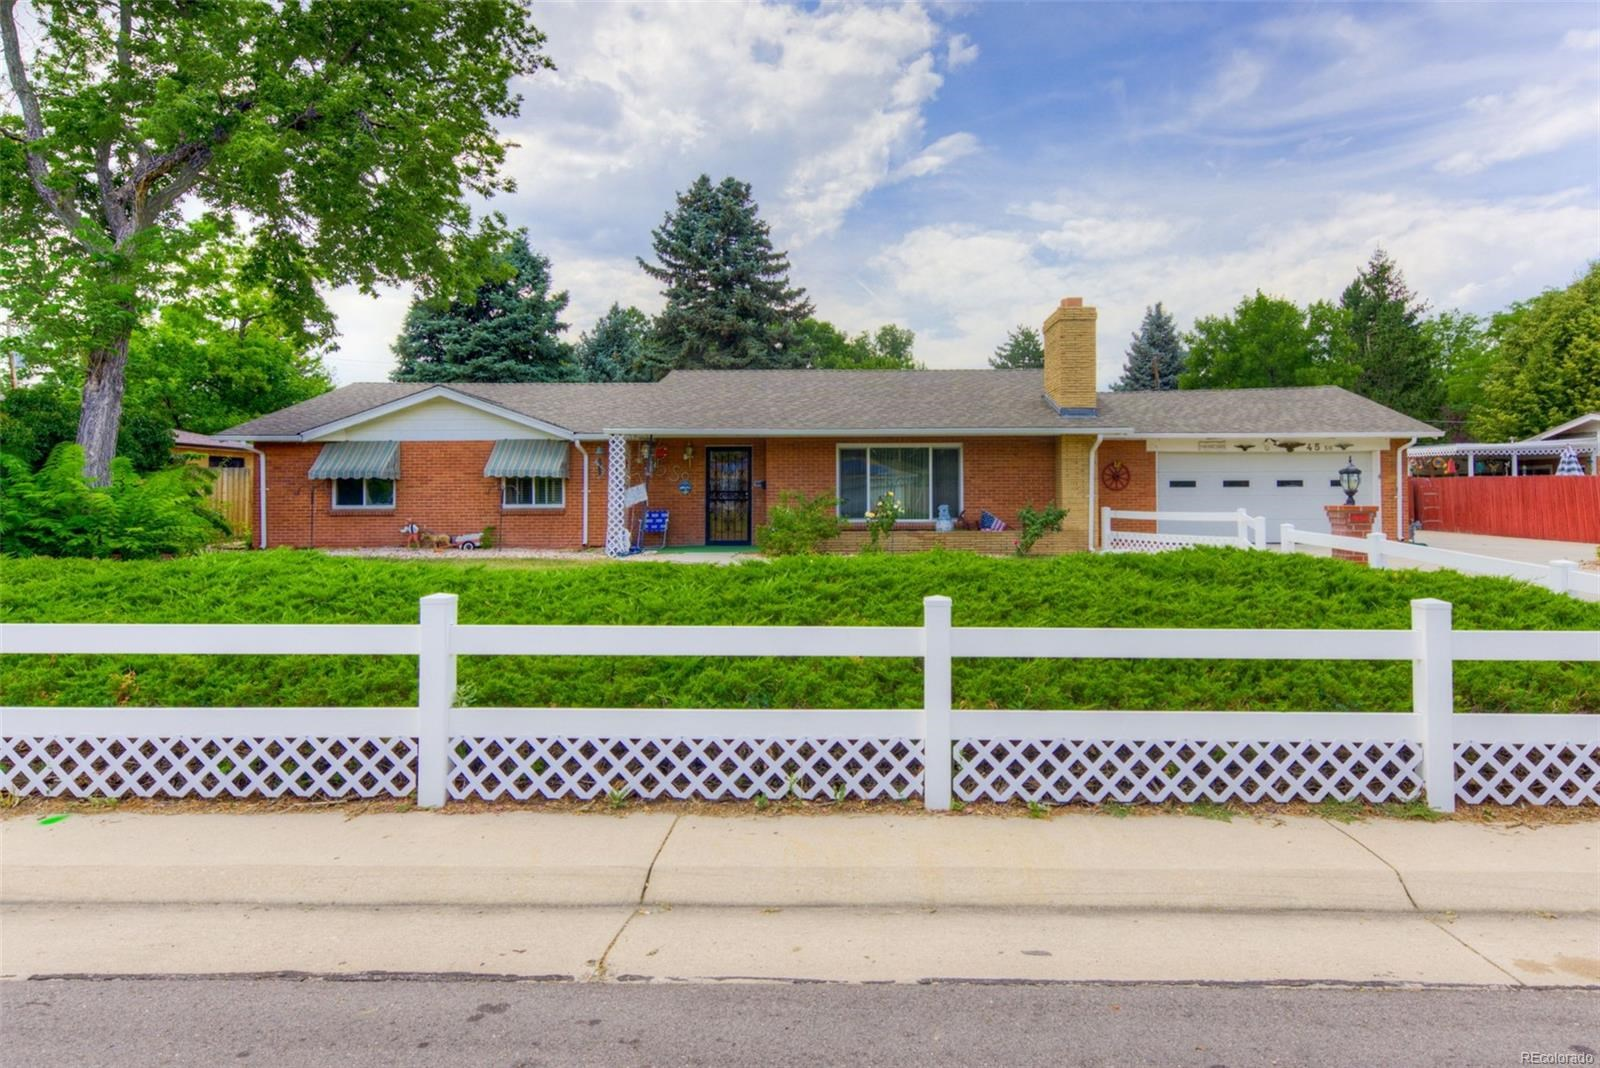 MLS# 5735873 - 2 - 45 S Brentwood Street, Lakewood, CO 80226